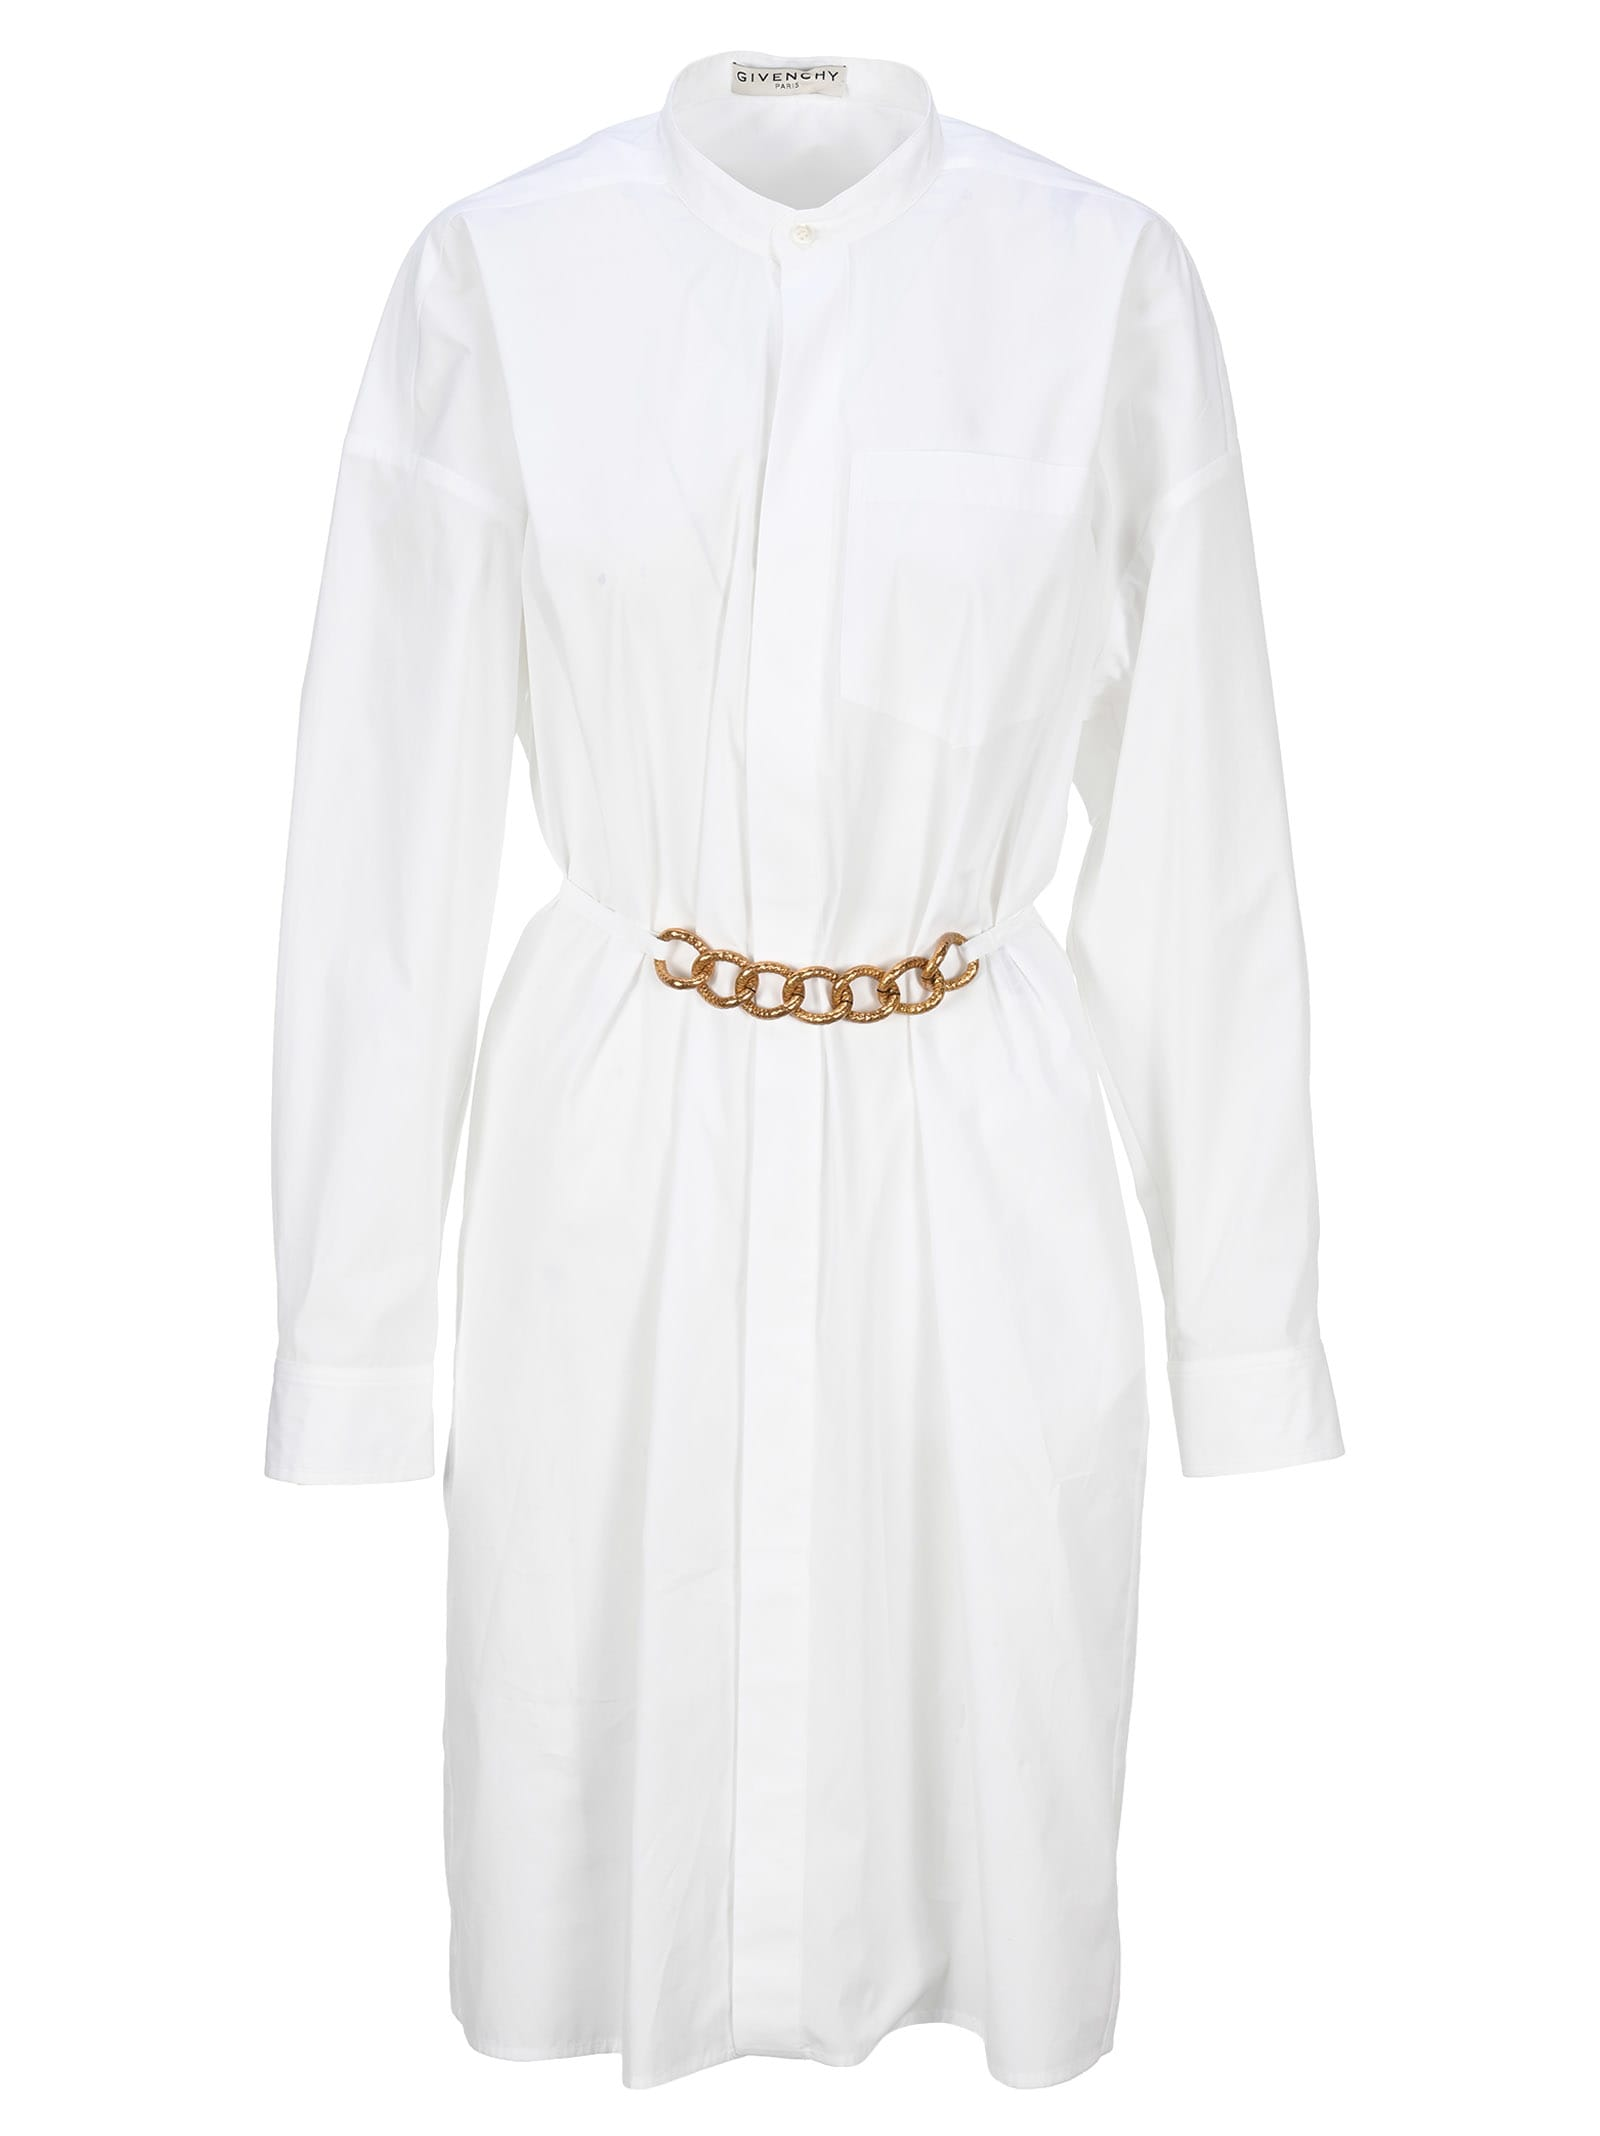 Givenchy Shirt Dress In Cotton With Chain Belt